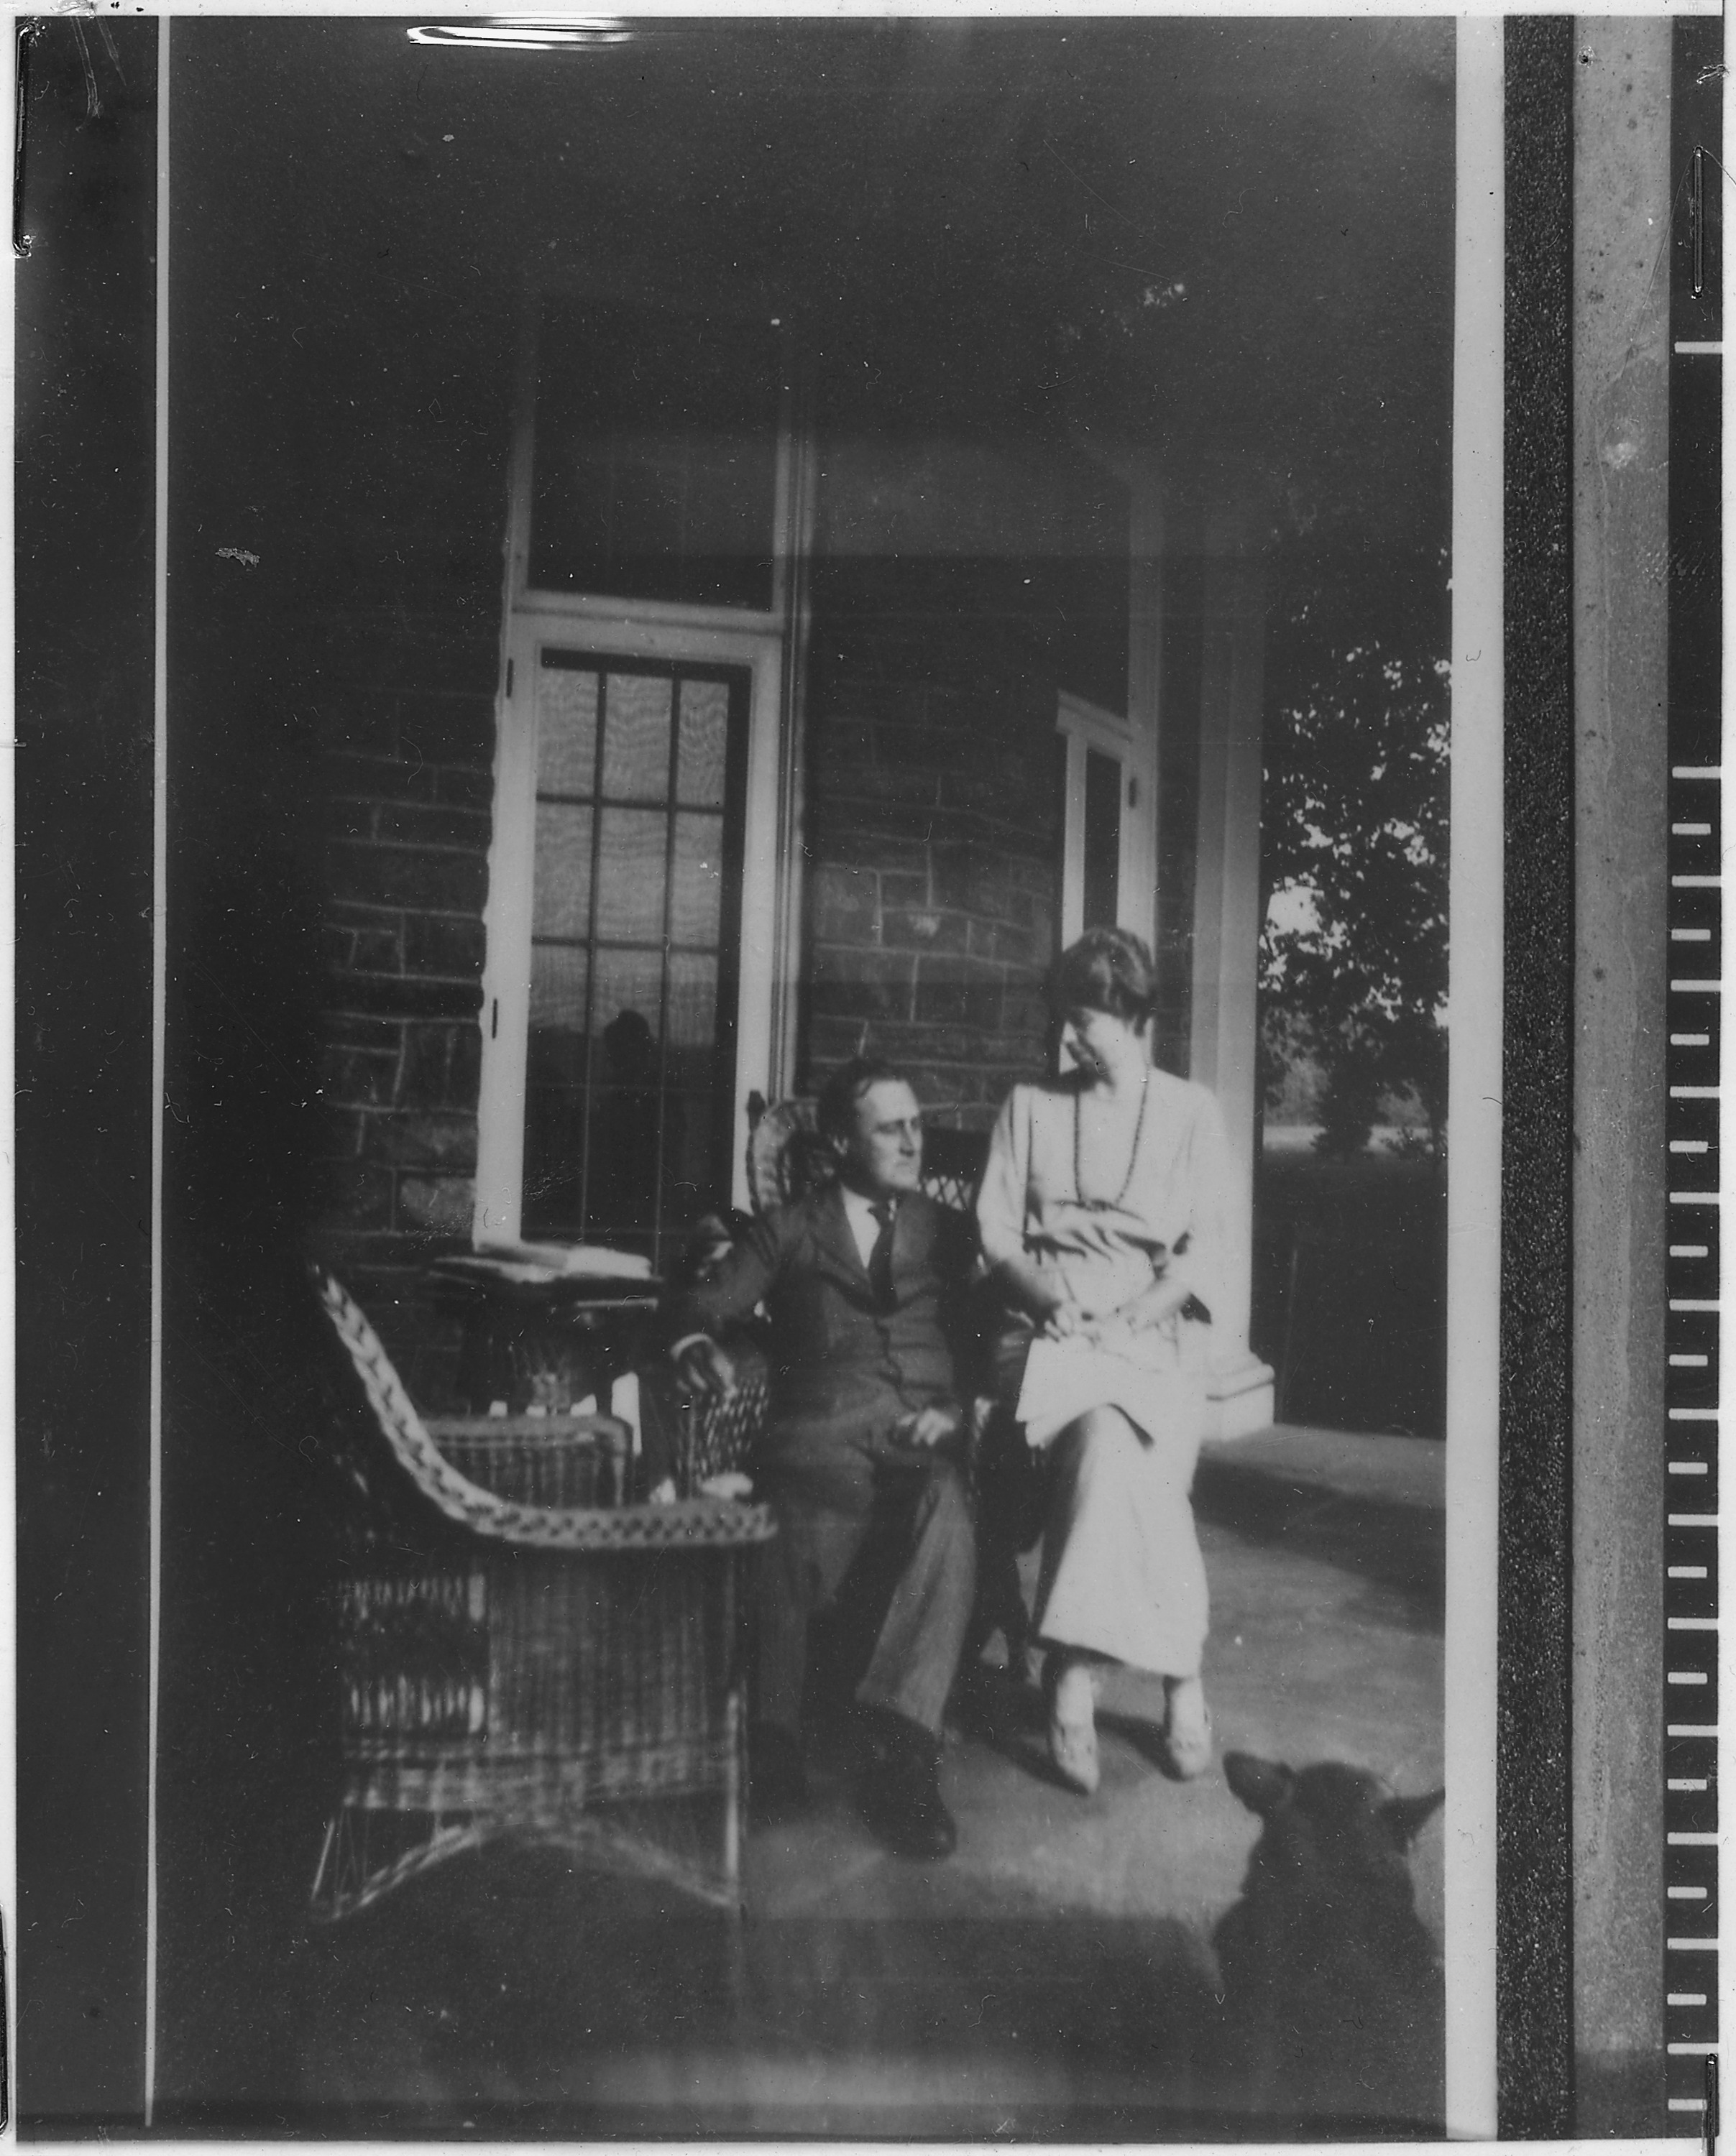 a biography of franklin delano roosevelt in hyde park As reminded by hyde park historian david woolner, fdr's condition likely  prevented him from having any physical affairs with anybody, including his  cousin.